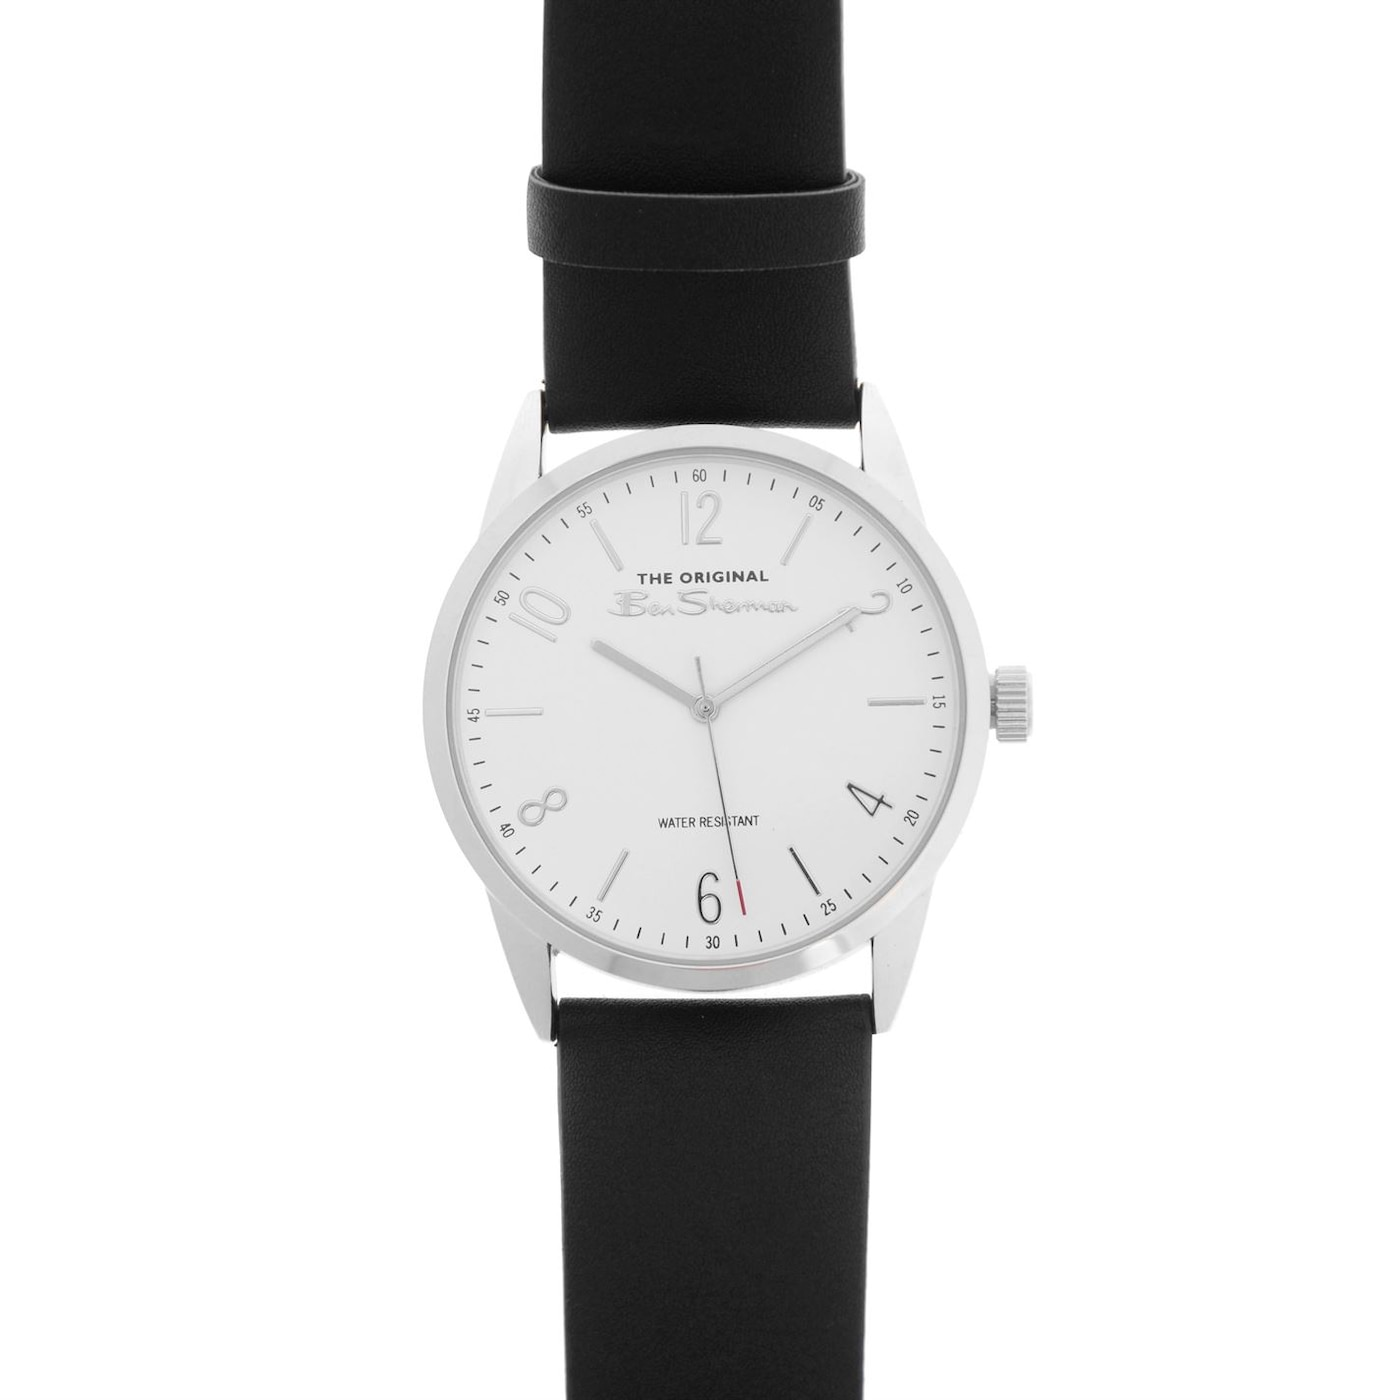 Ben Sherman BS162 Watch